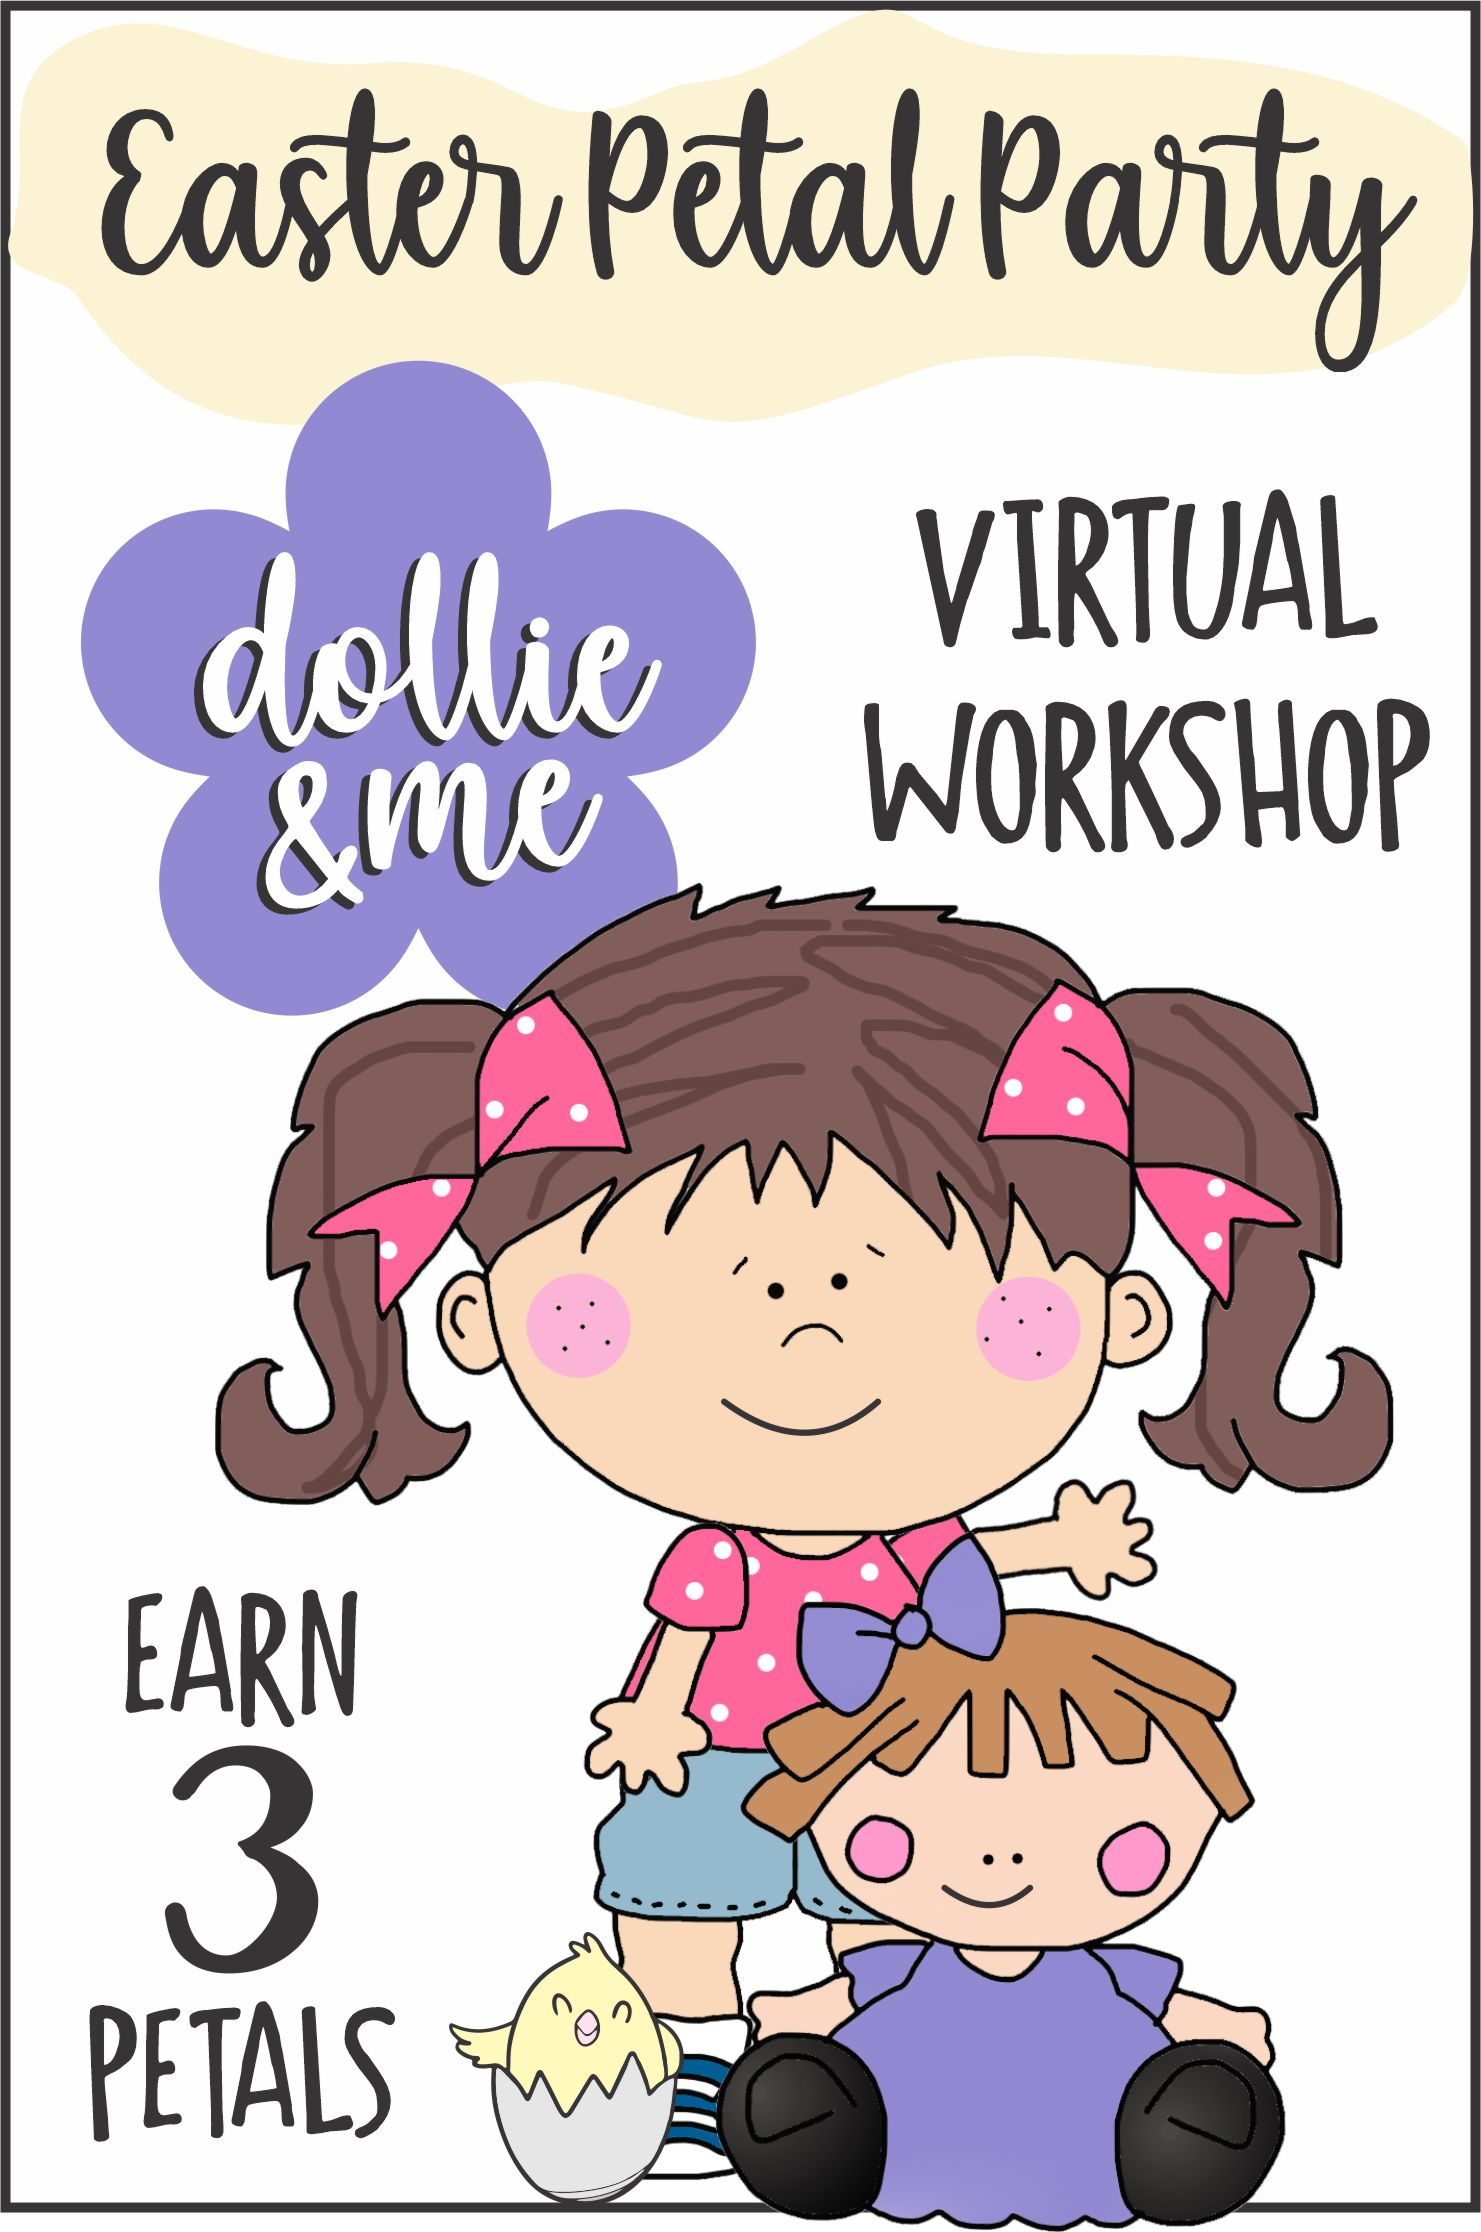 """Bring your favorite dollie and join us for our special Easter """"My Dollie & Me"""" Workshop with crafts, games, dancing, and more! #makingfriends #dollieandme #daisies #daisy #daisypetals #girlscouts #daisyscouts #girlscoutpetals #easter #easterparty #girlscouts via @gsleader411"""